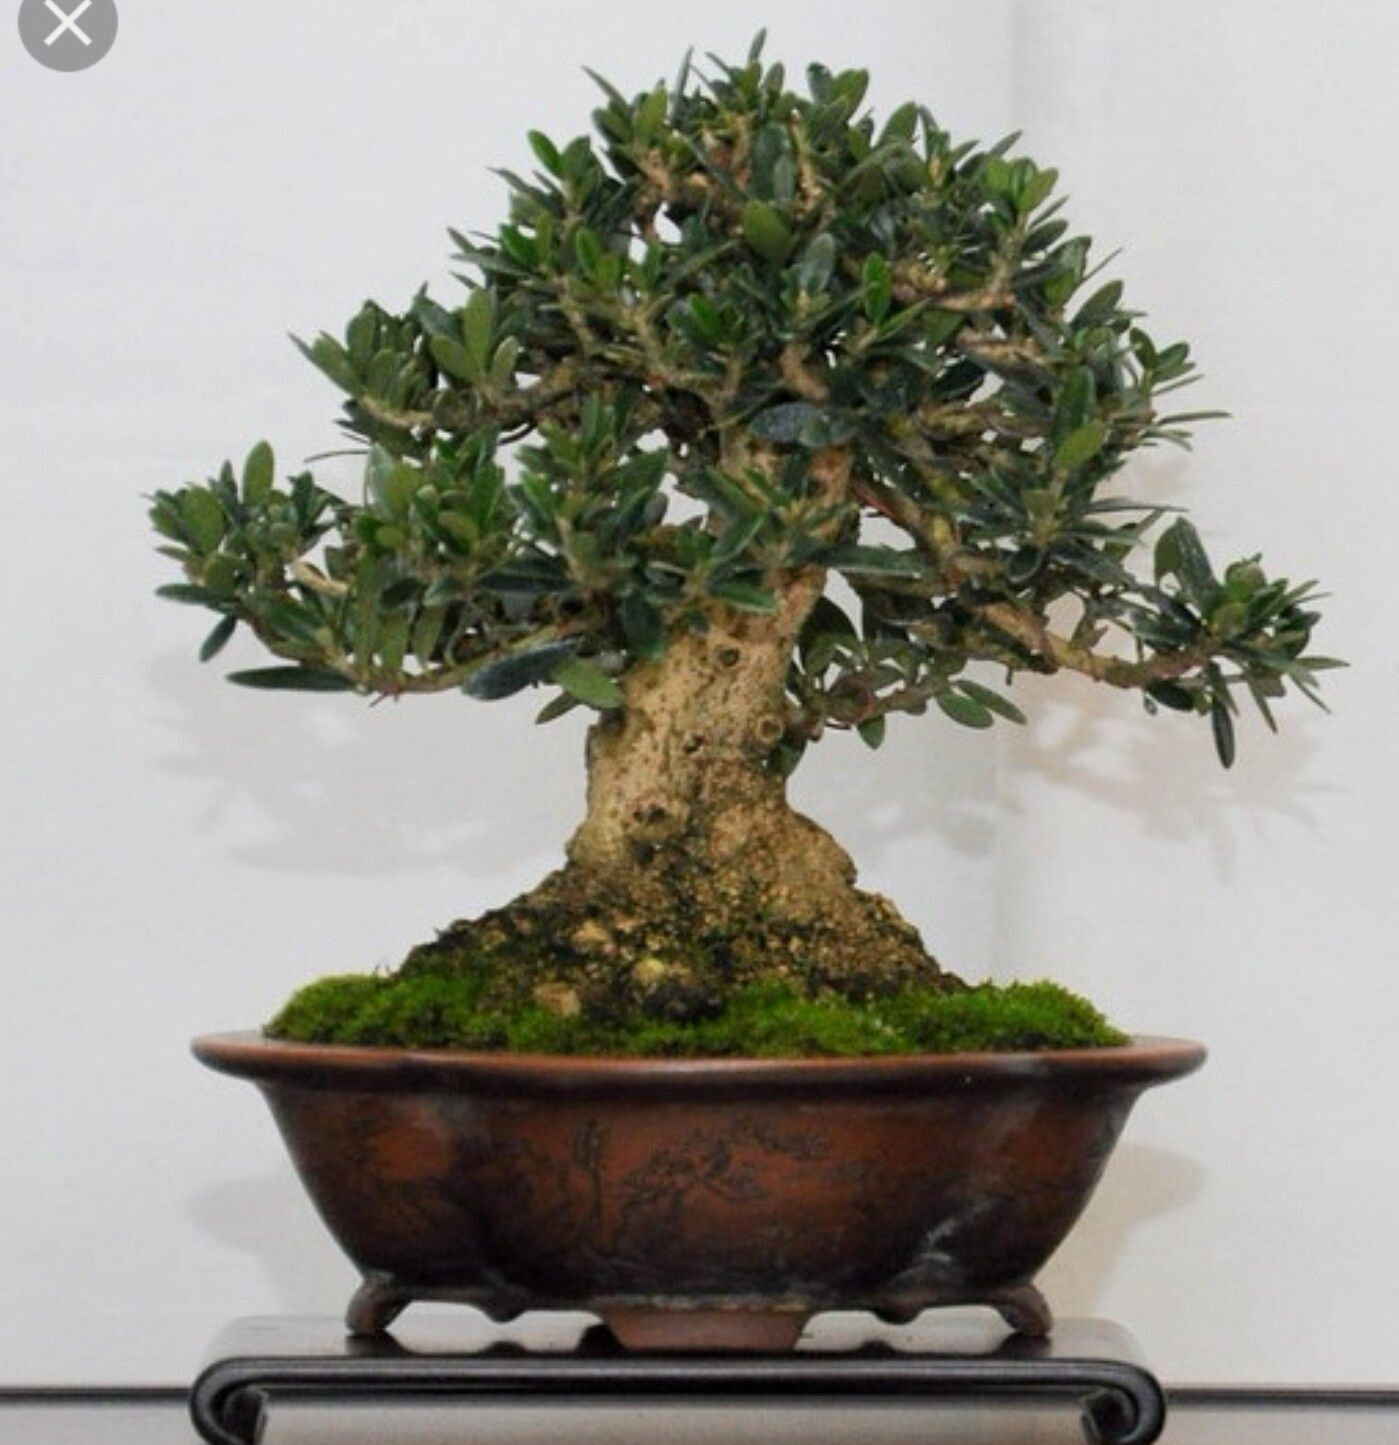 Pin by Bonsai Student on e) Pictures Olive Bonsai tree